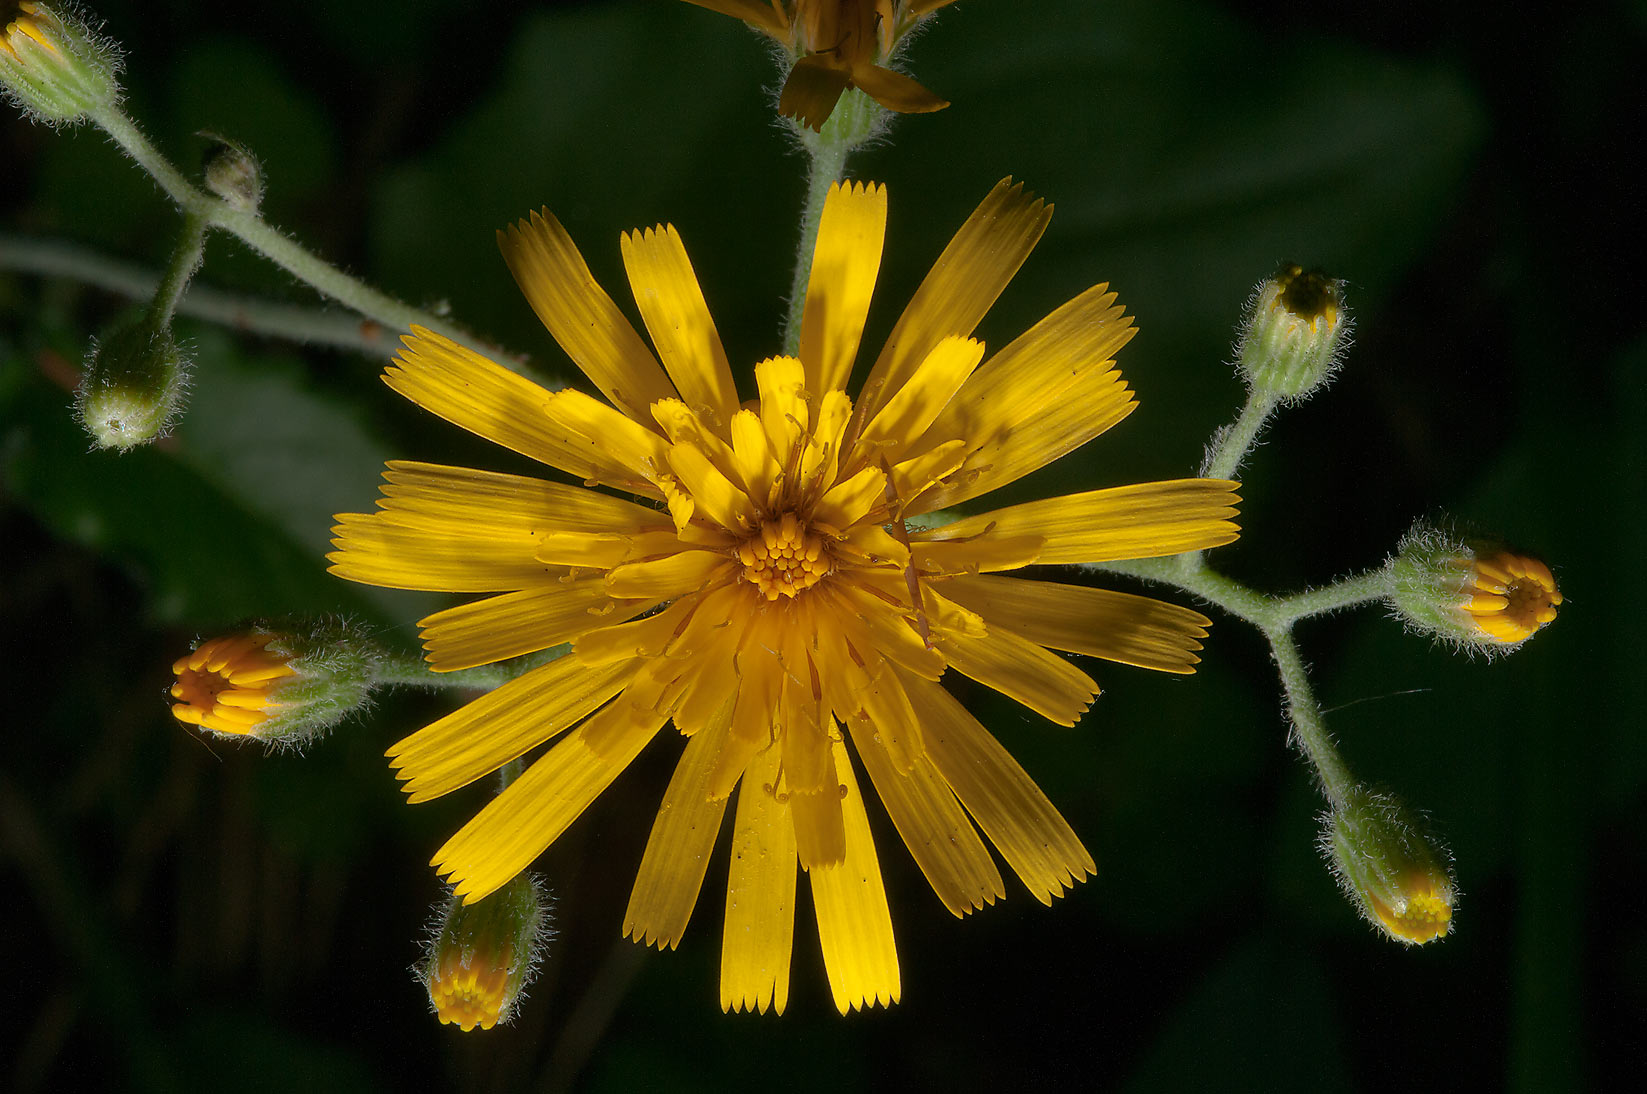 Wall hawkweed (Hieracium murorum, Russian name...Petersburg in Leningrad Region. Russia